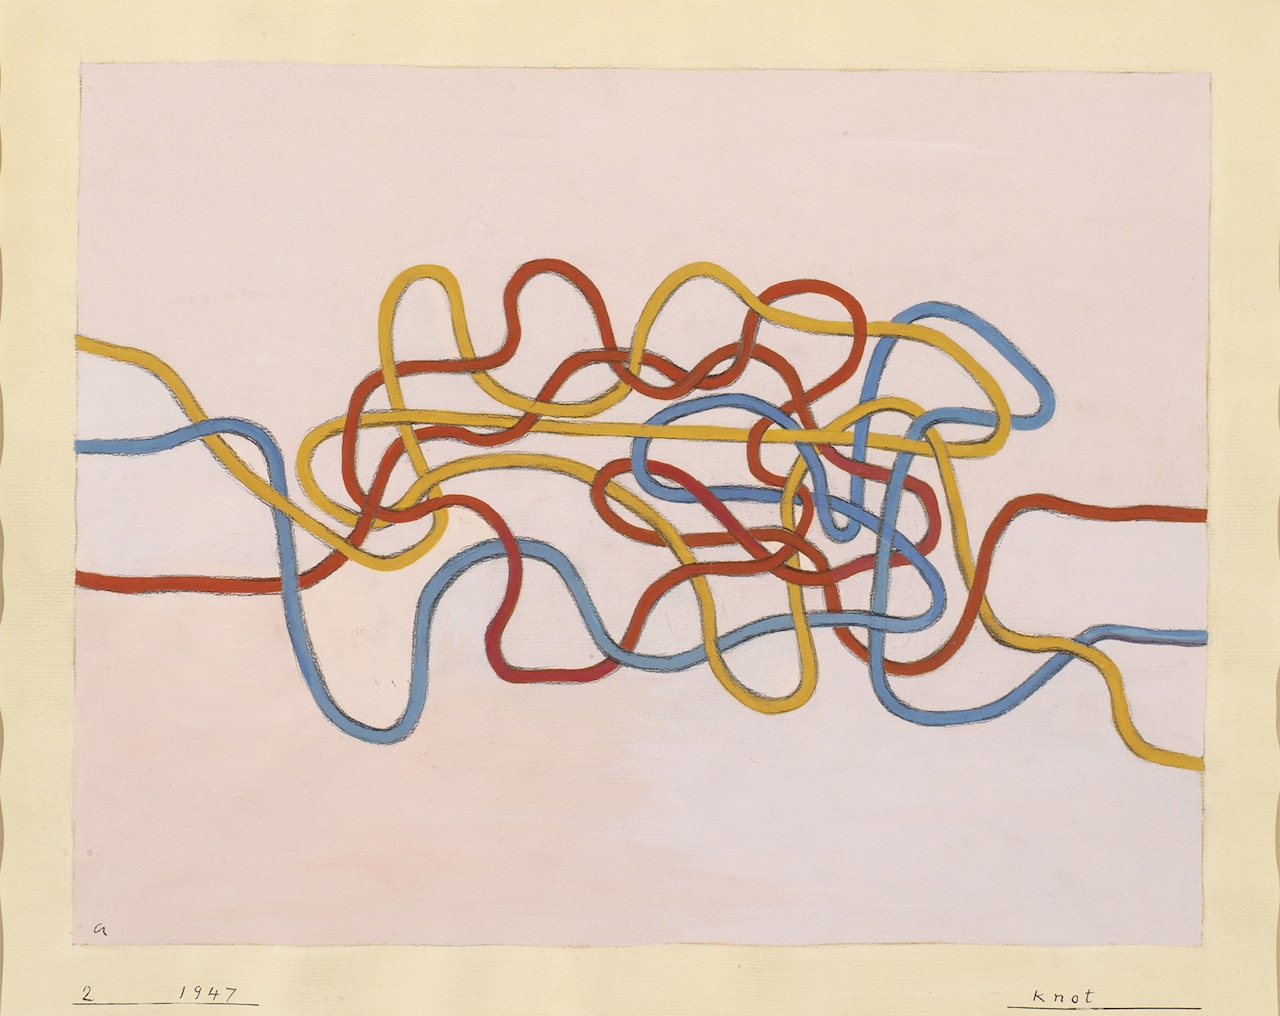 """Anni Albers, """"Knot 2"""" 1947. Gouache on paper, 17 x 21 1/8 inches. © The Josef and Anni Albers Foundation/ Artists Rights Society New York. Photo by Tim Nighswander/ Imaging 4 Art."""